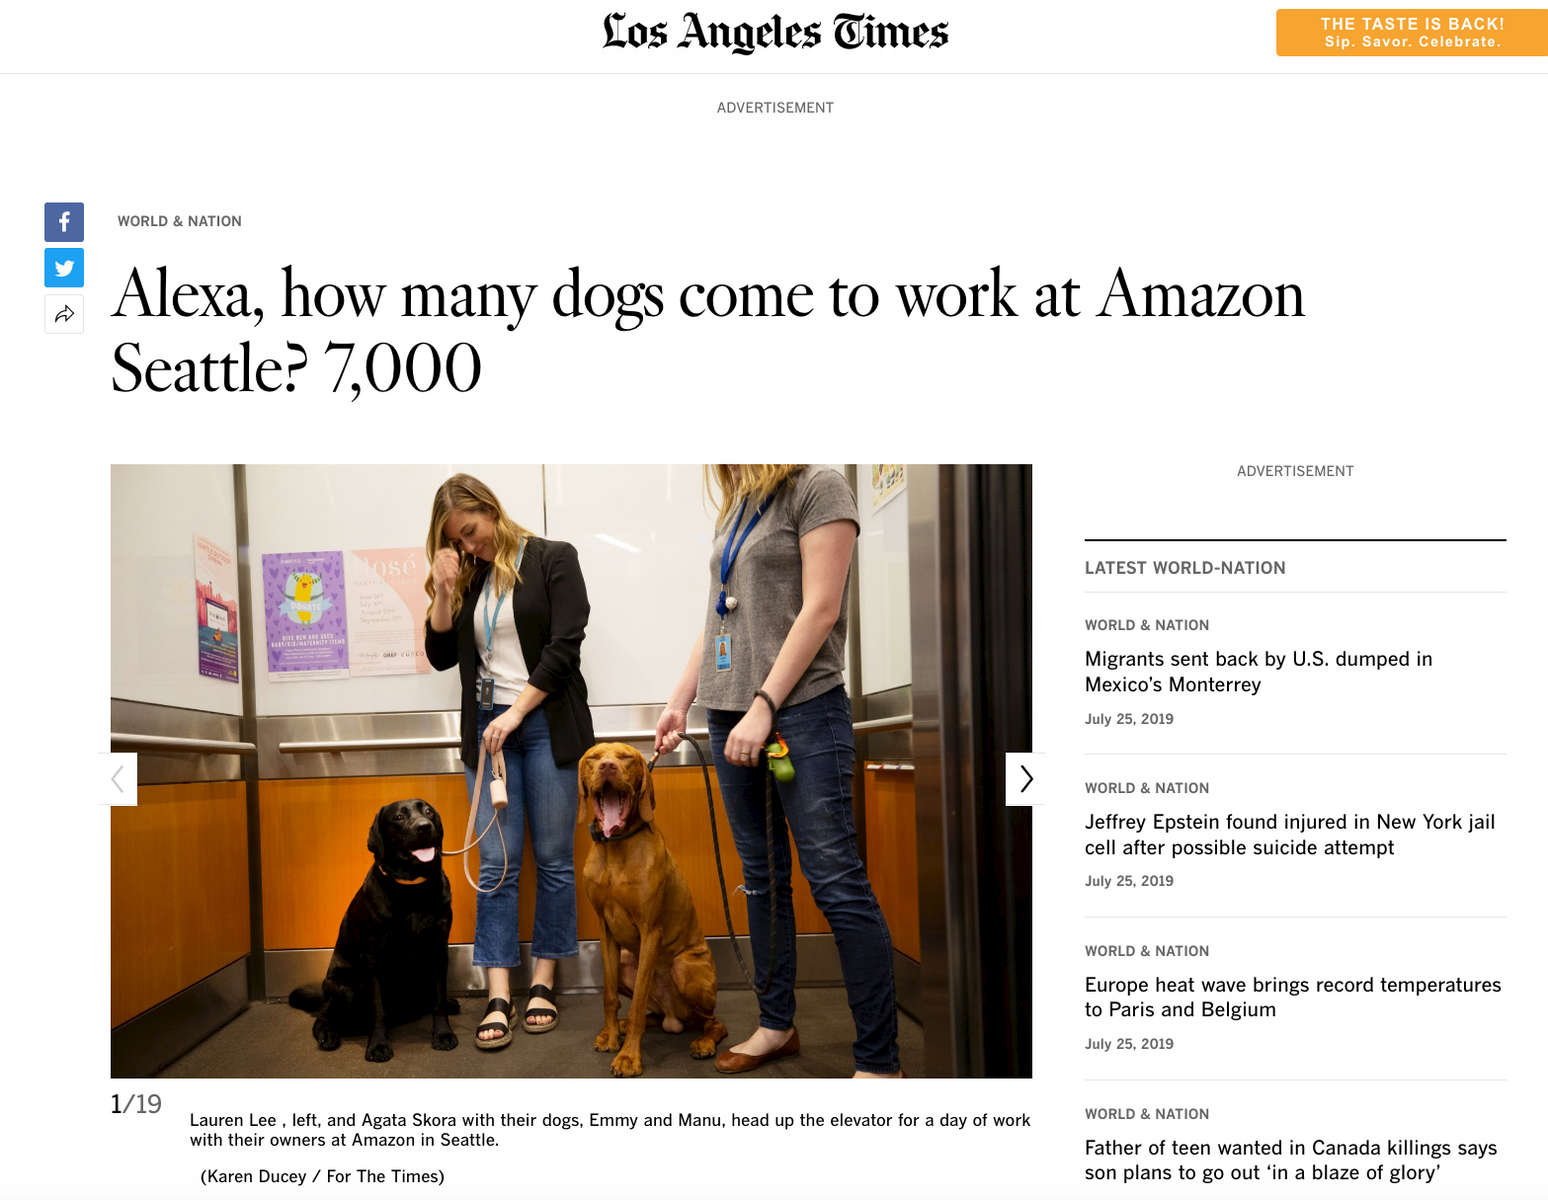 {quote}Alexa, how many dogs come to work at Amazon Seattle? 7,000{quote}  Photos for the Los Angeles Times, June 21, 2019